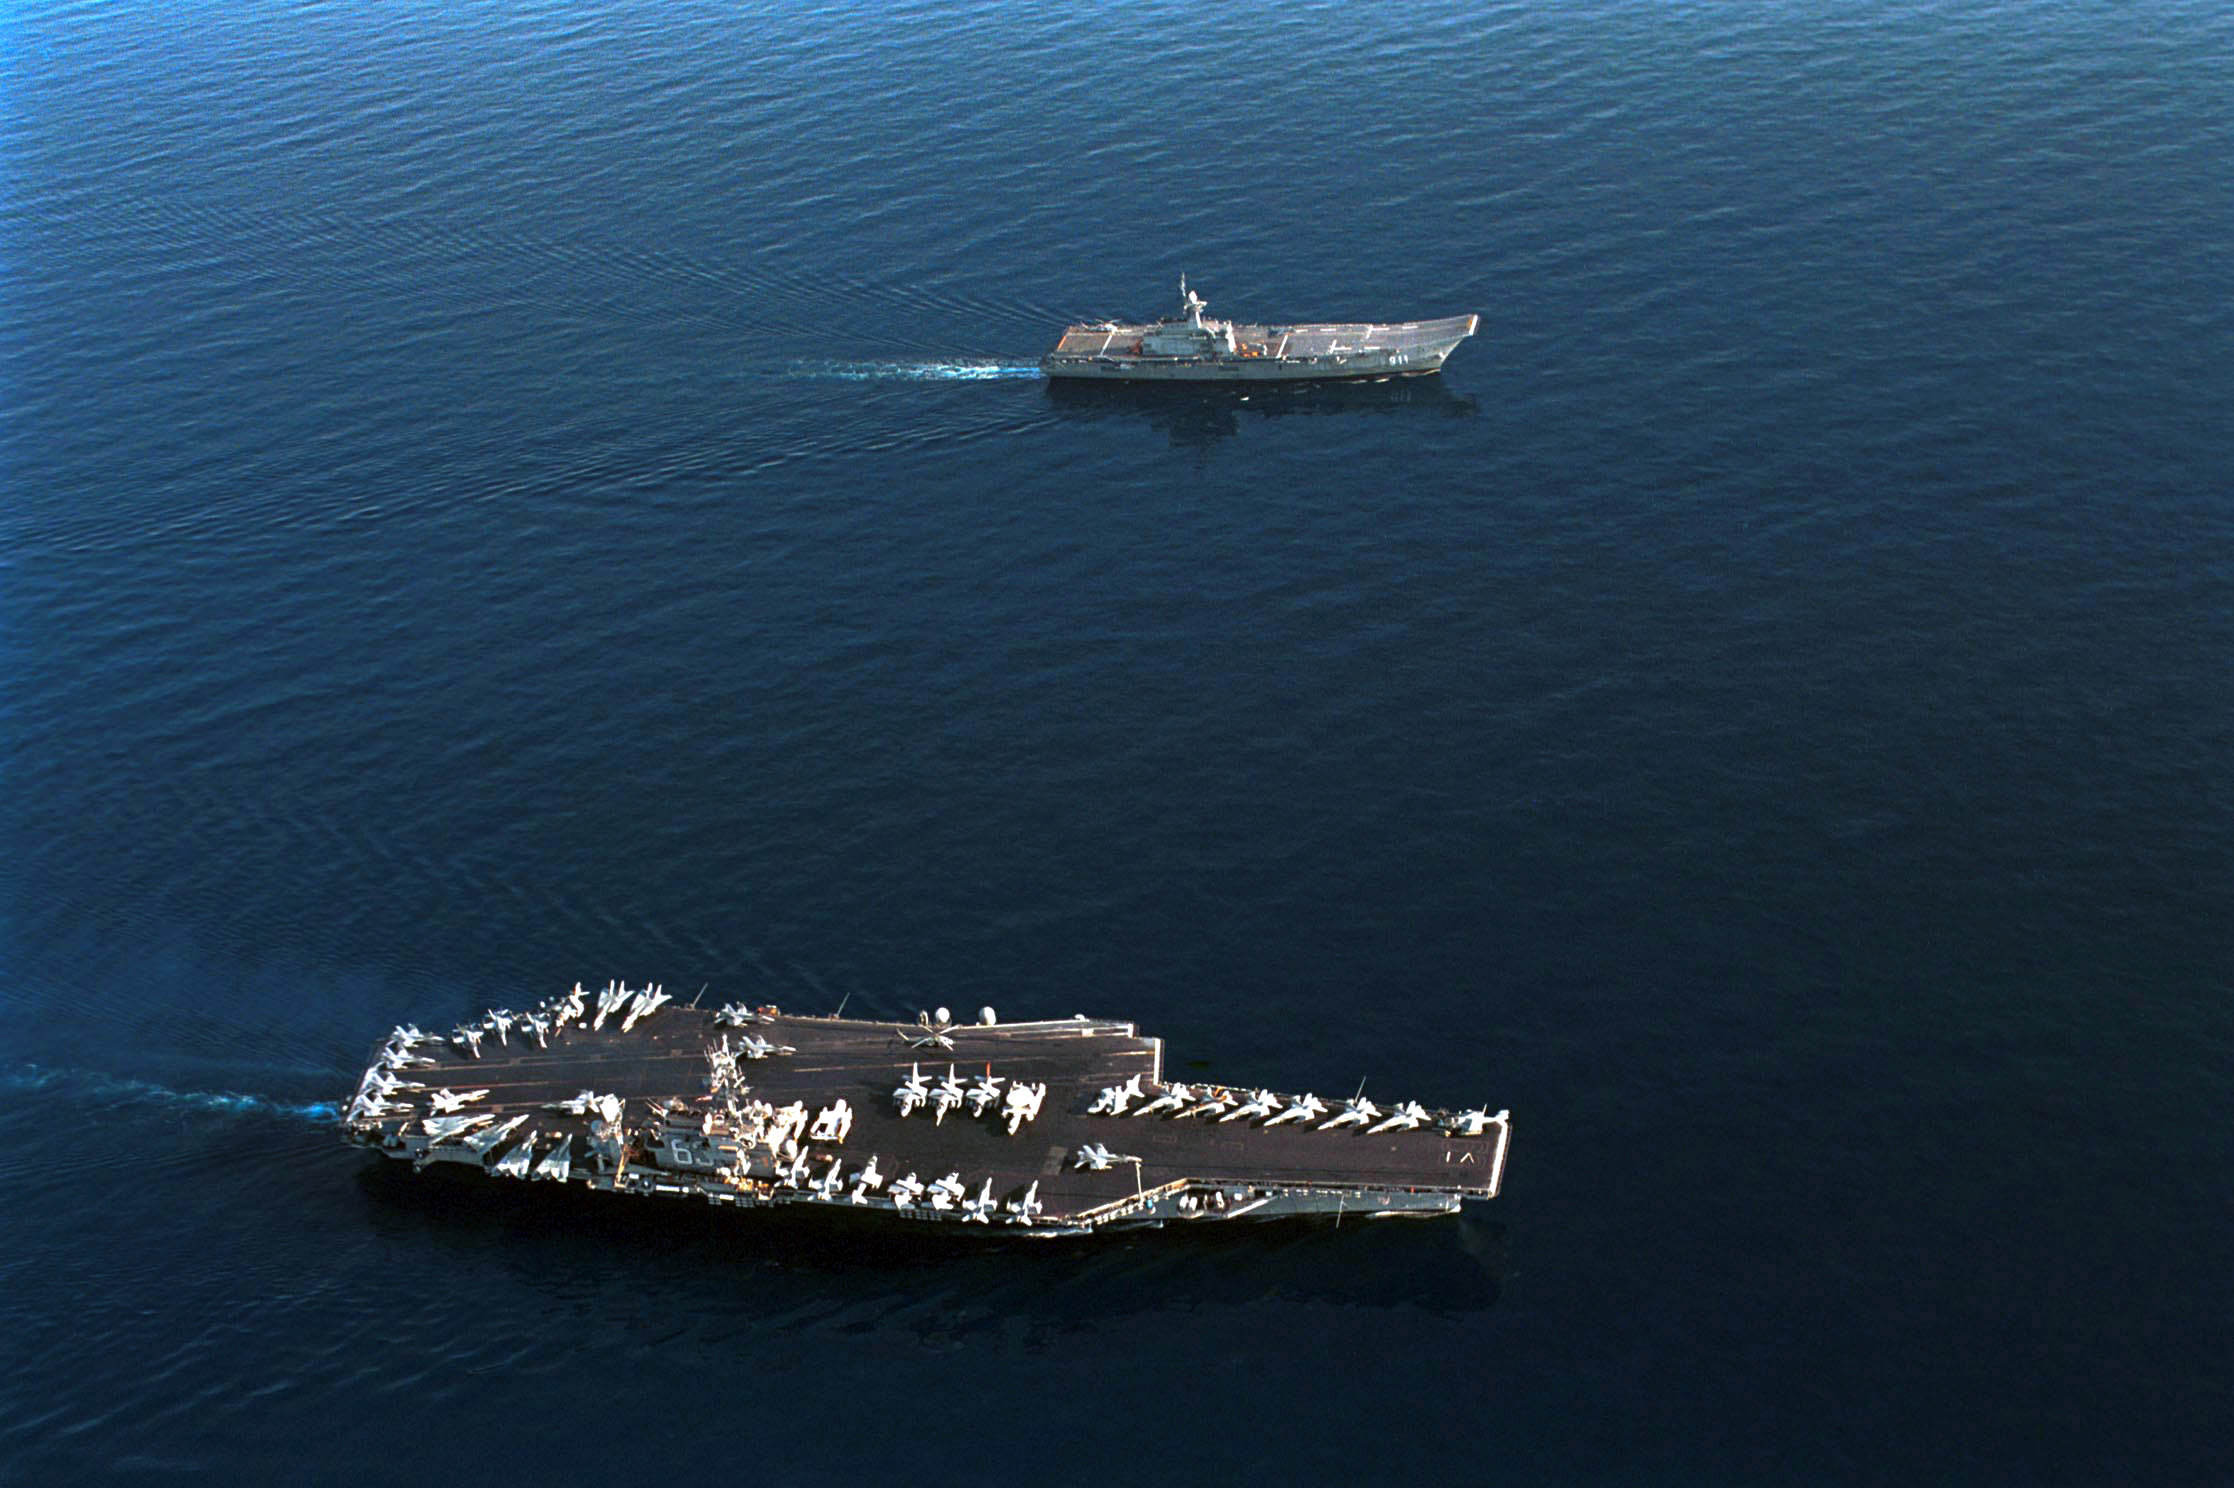 Thailand has an aircraft carrier without any aircraft